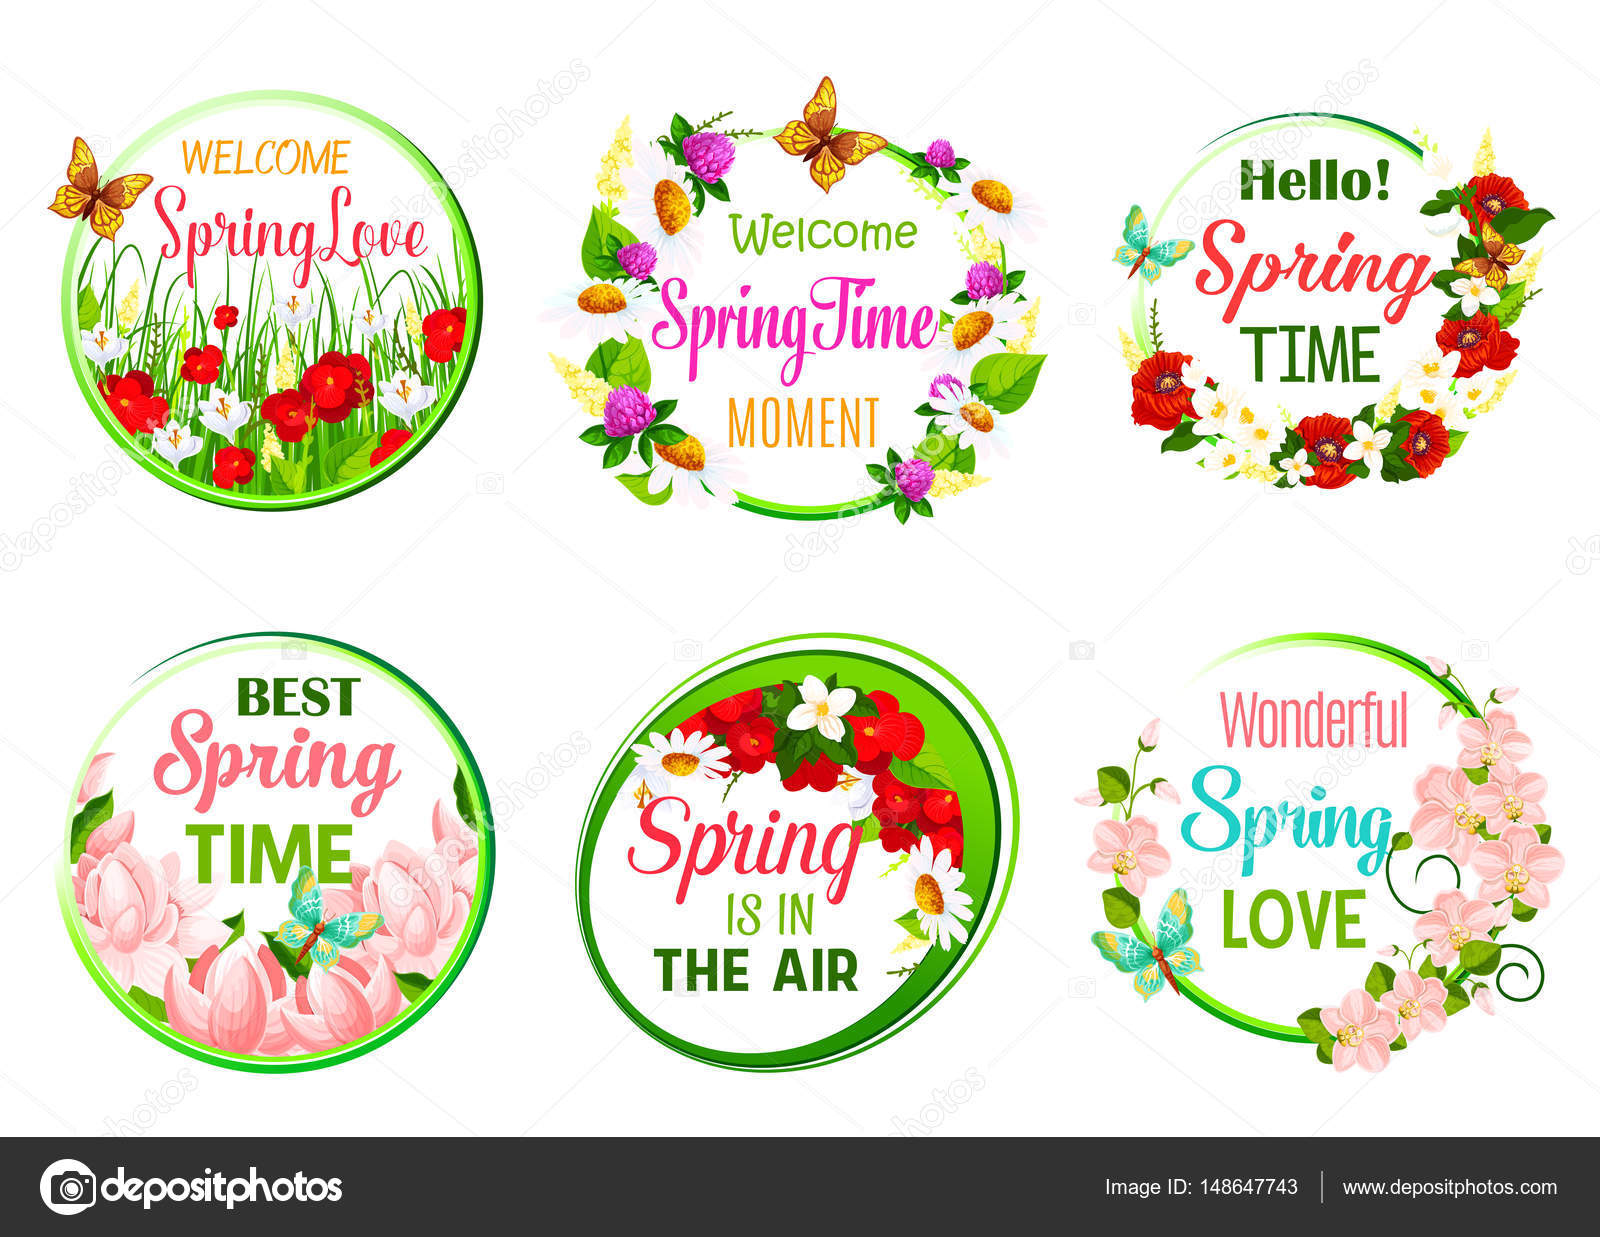 Springtime Greeting Quotes Templates Of Welcome Spring And Is In The Air Vector Fl Icons Set Blooming Begonia Poppy Flowers